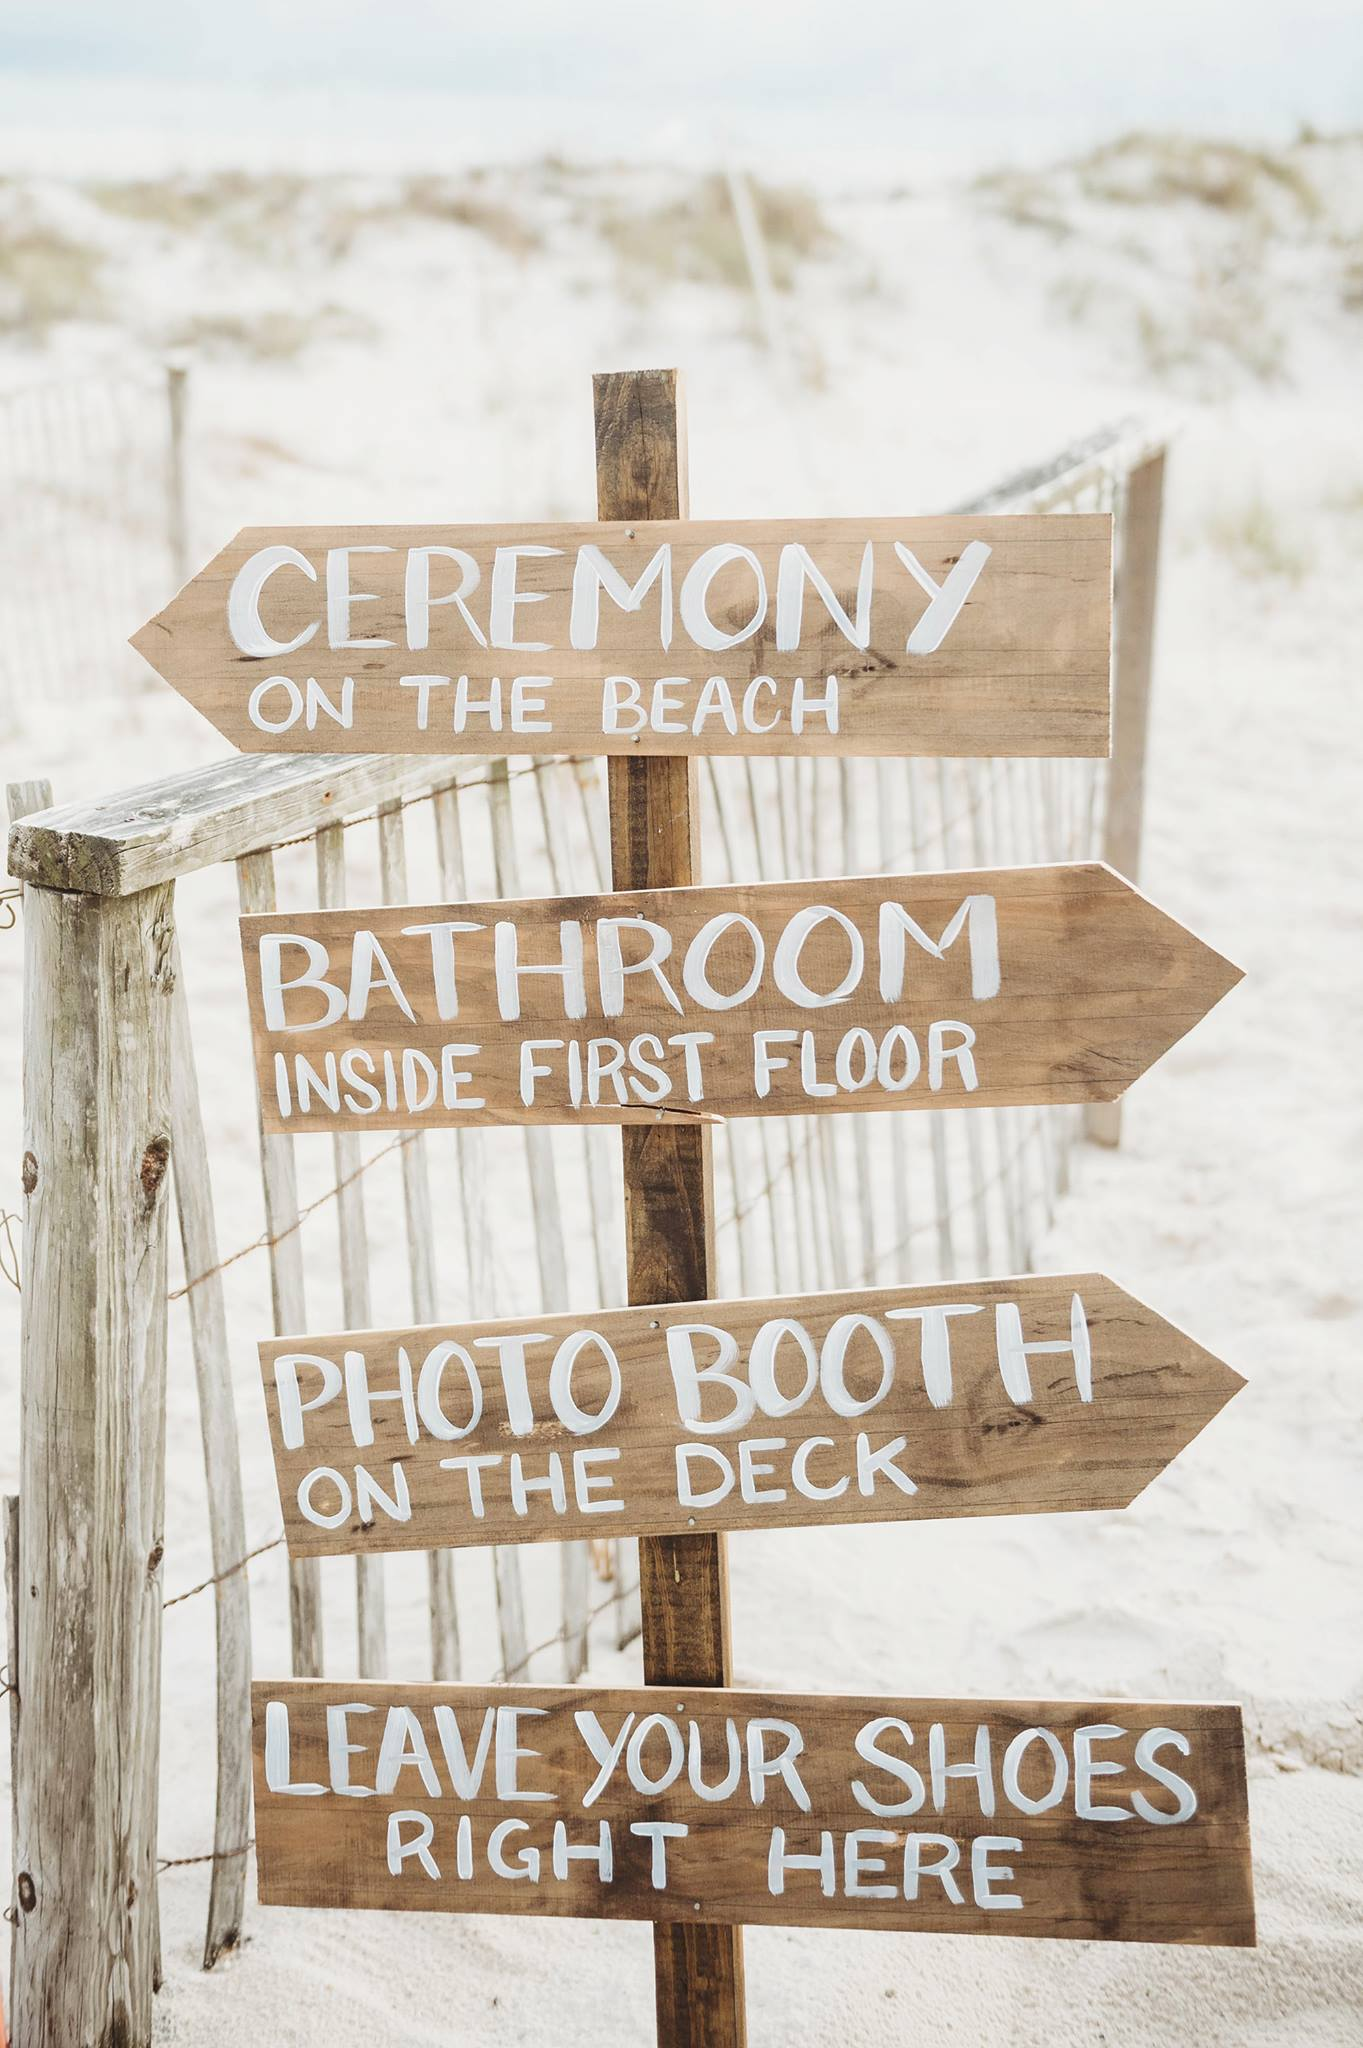 Orange Beach Wedding Photography by Jordan Burch, Beach Wedding Photography